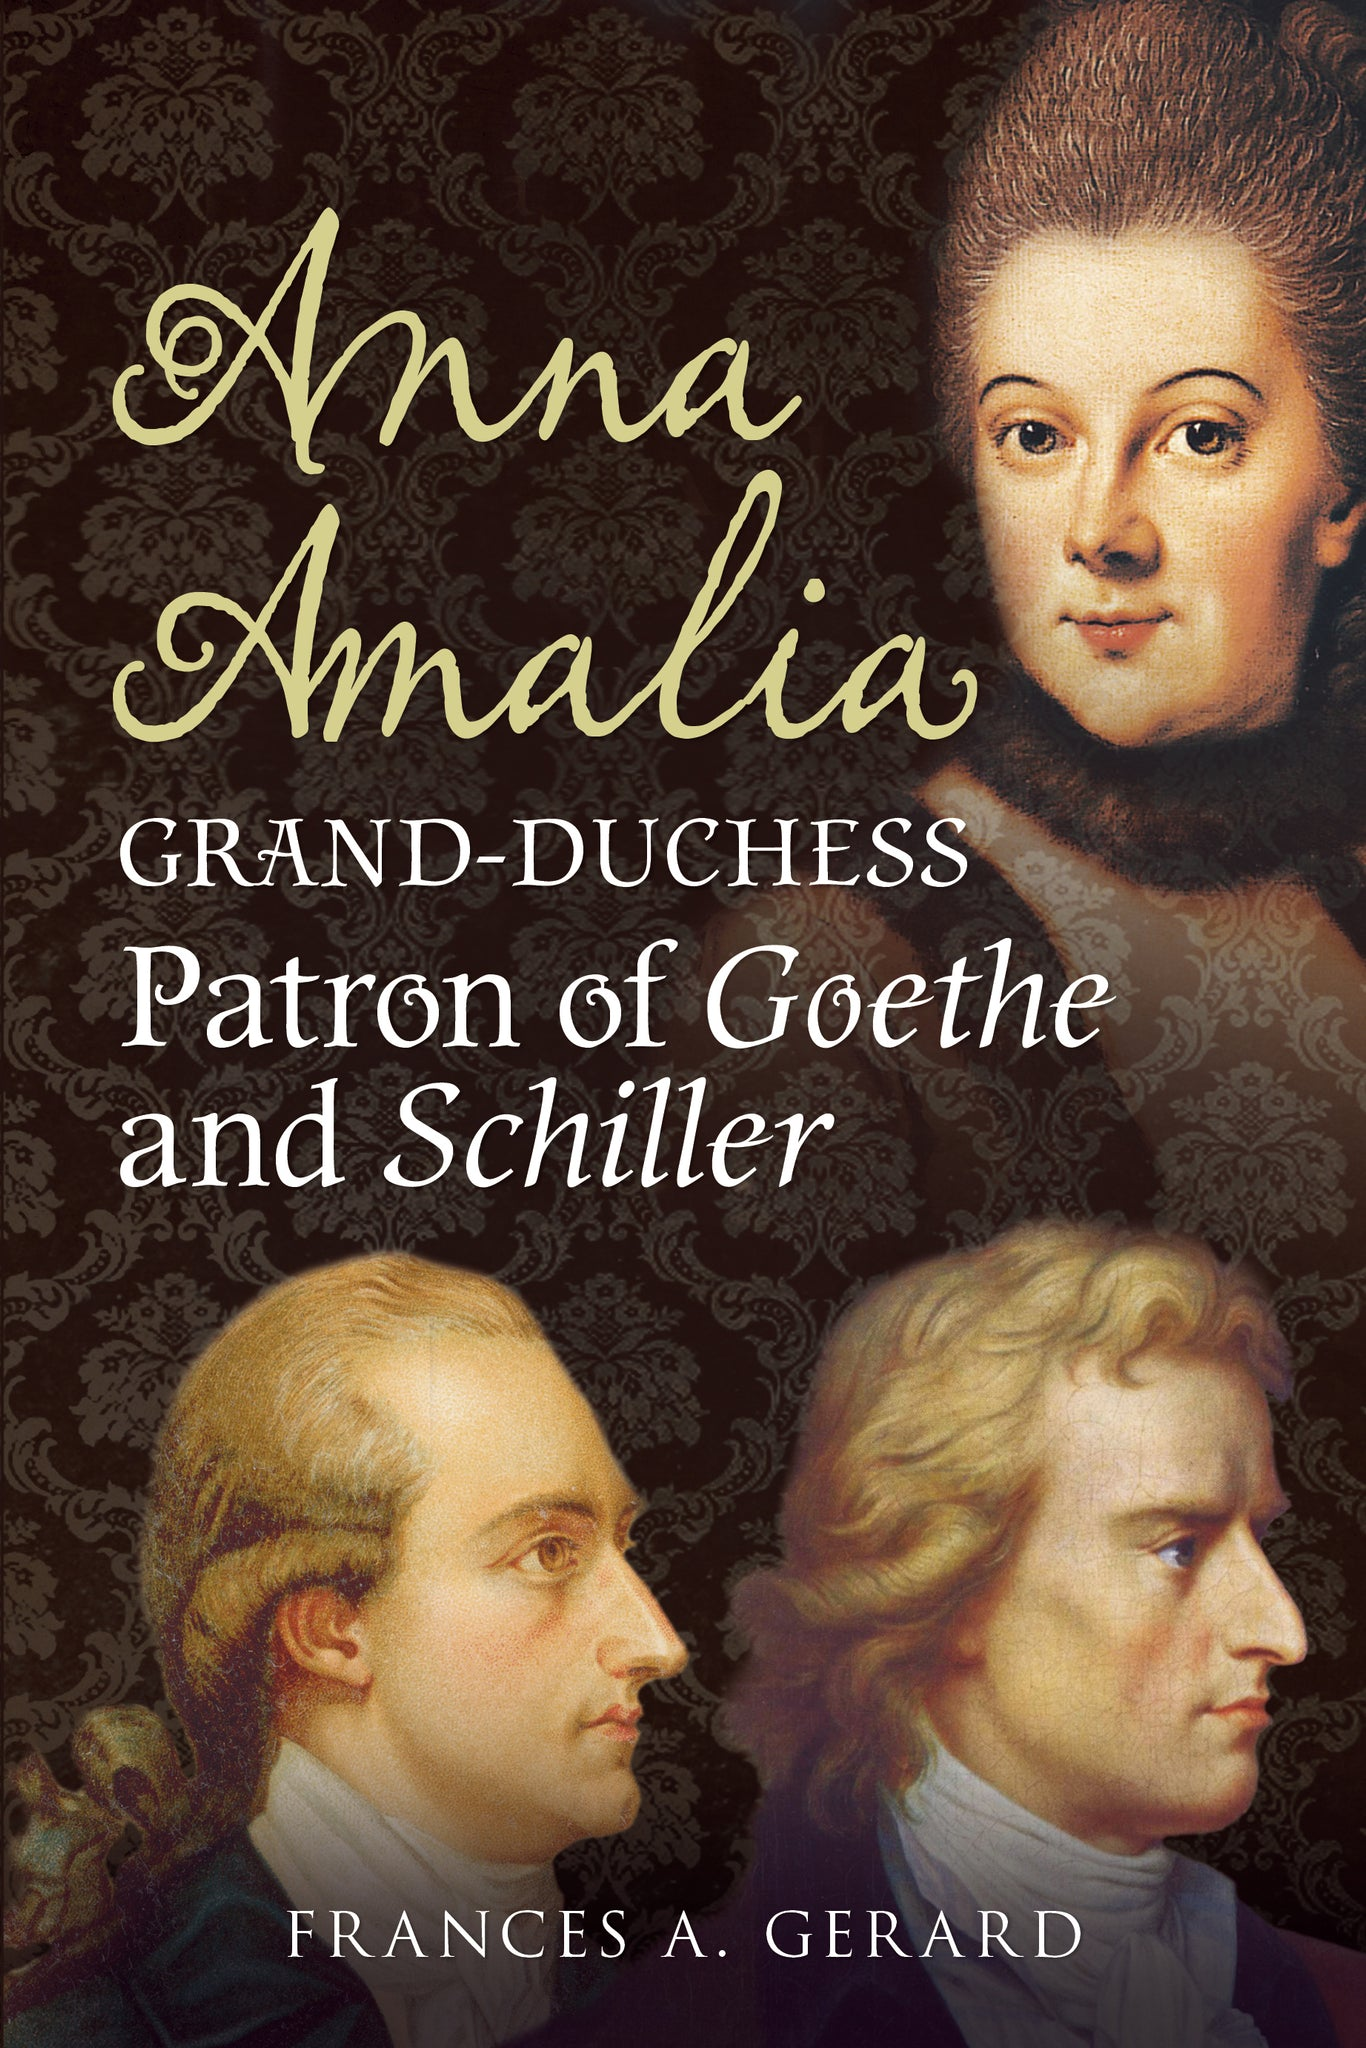 Anna Amalia, Grand-Duchess: Patron of Goethe and Schiller - available now from Fonthill Media